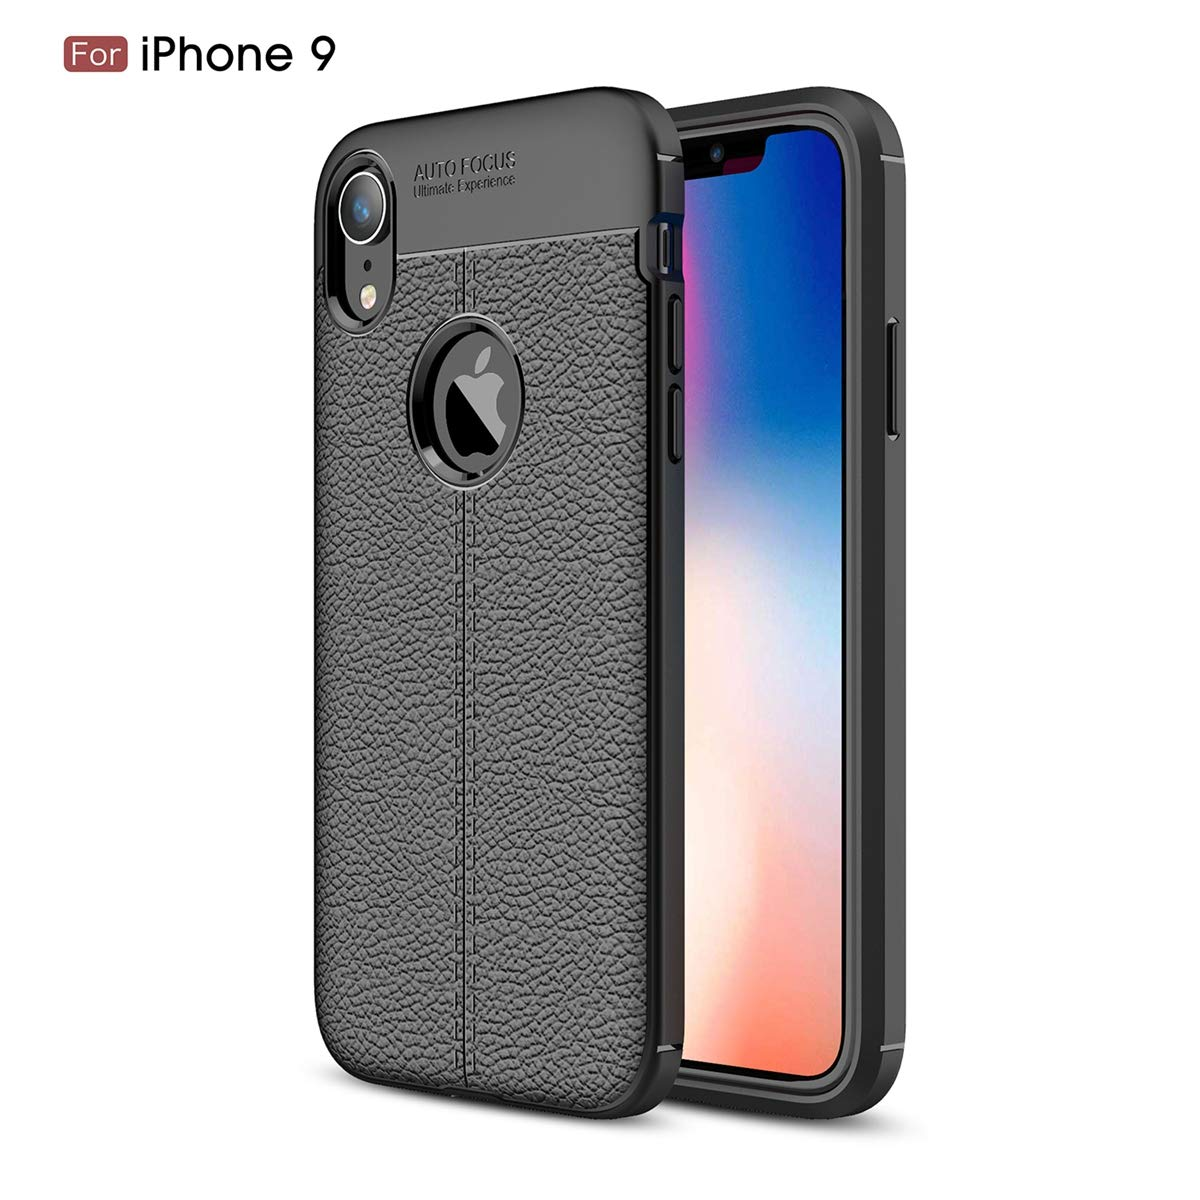 new styles 08169 6907a Amazon.com: Torubia iPhone 9 case, iPhone 9 Cover, Durable Cell ...